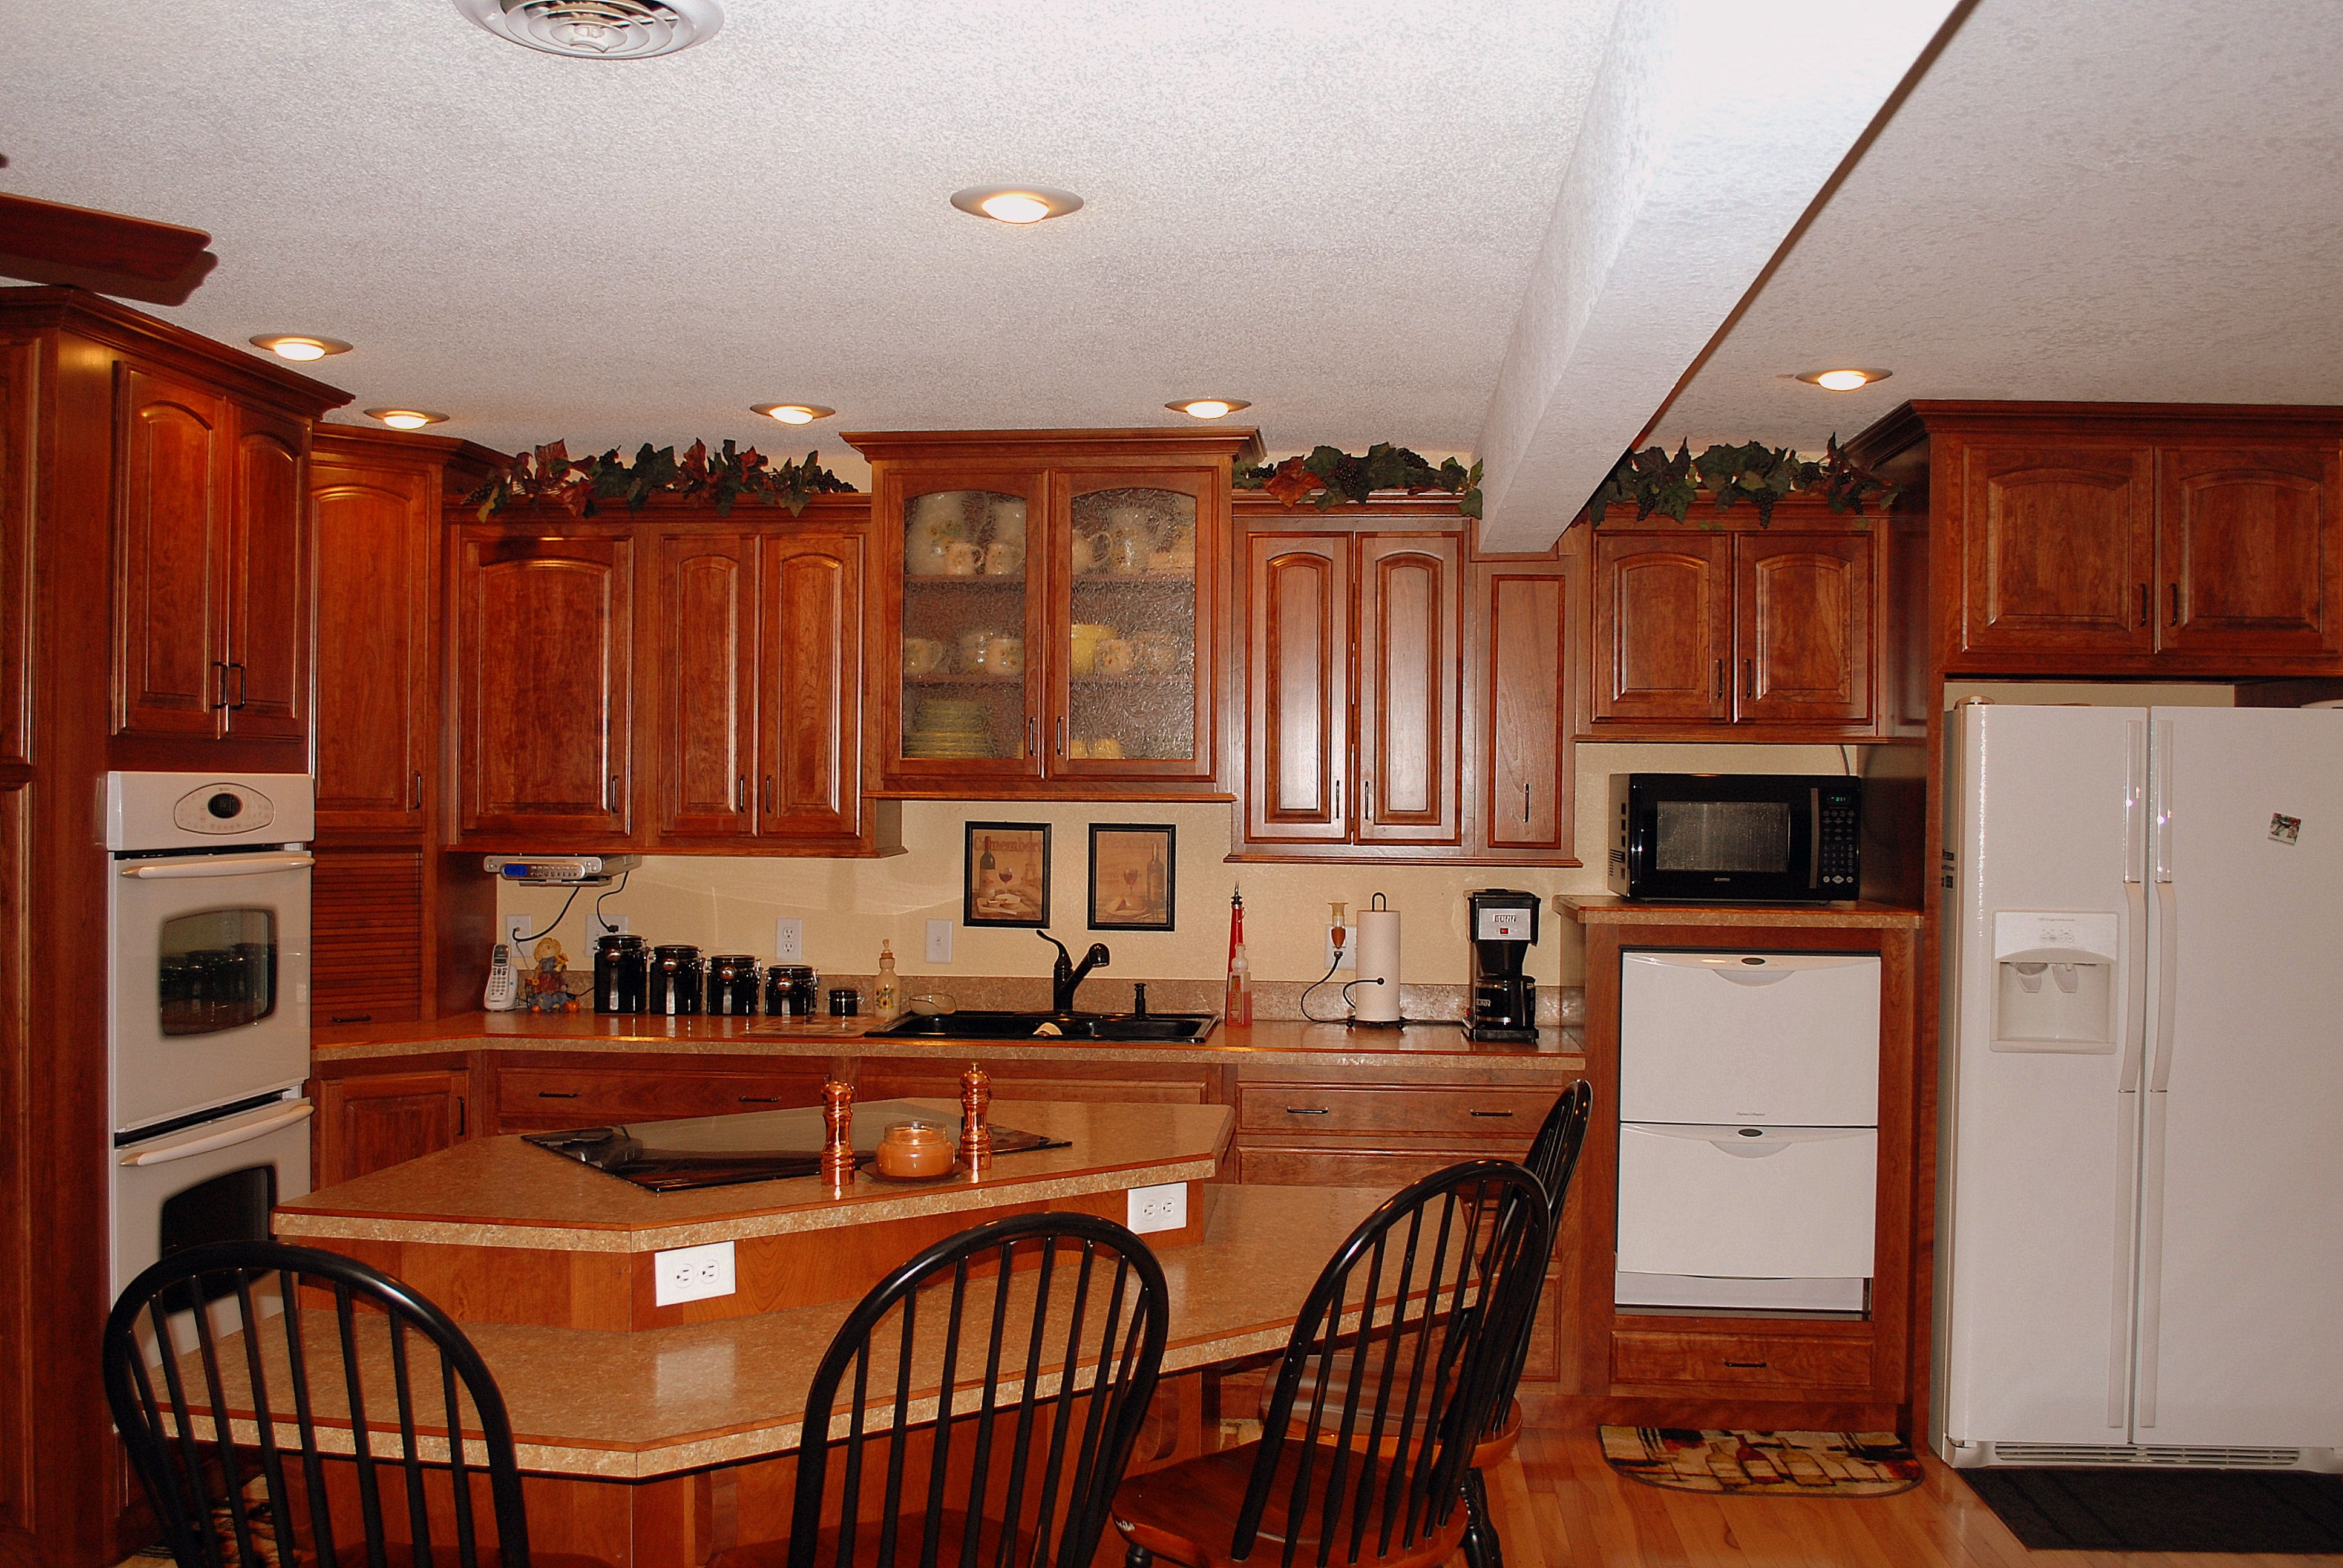 Perfect Cherry Cabinetry By Forever Cabinets By Kendrick. Www.forevercabinets.com